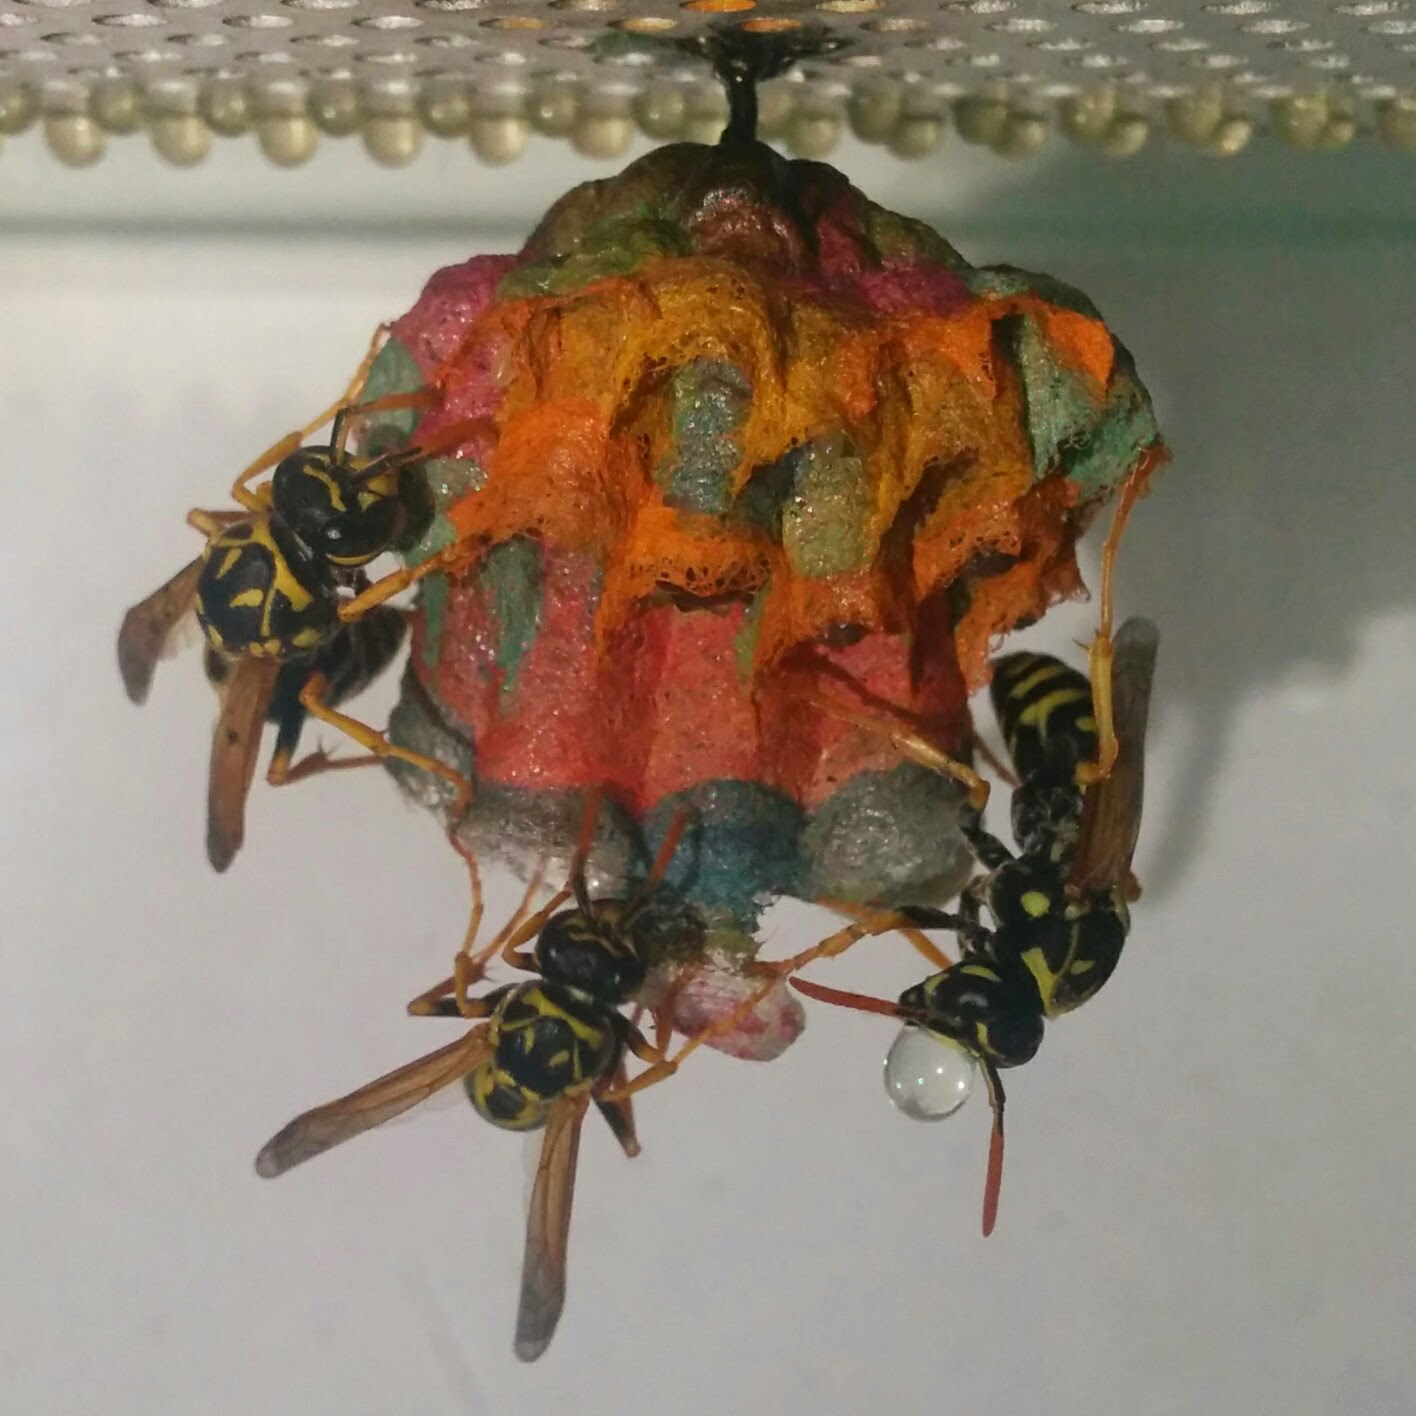 Colorful Wasp Nest Stage 4